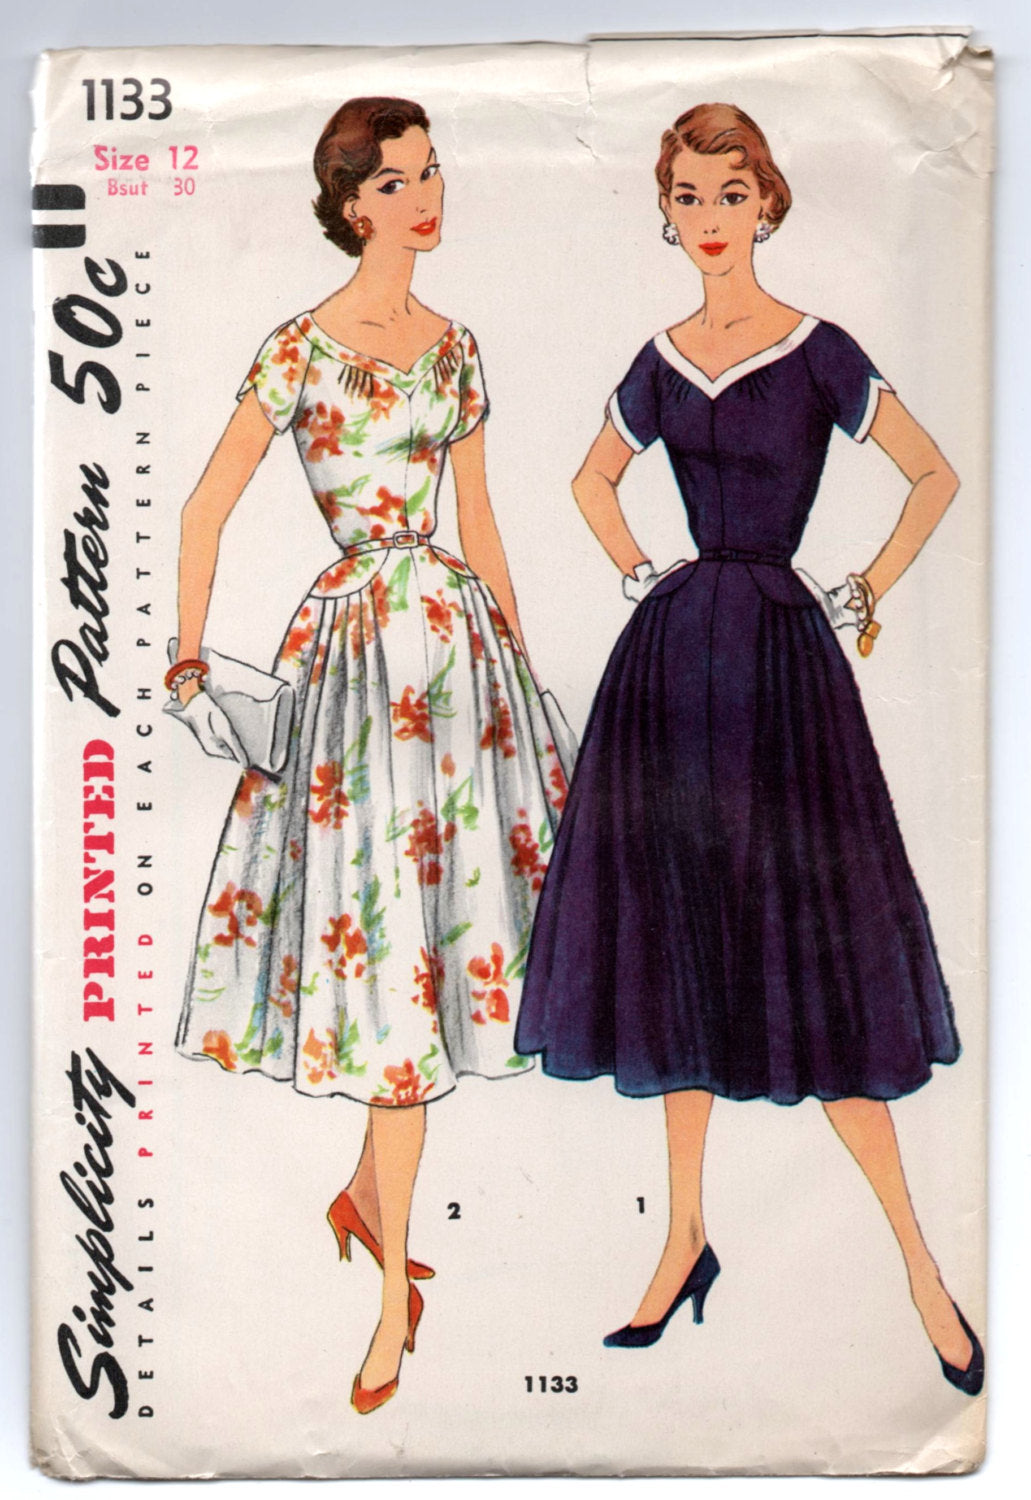 1950's Simplicity Day Dress with Curved V Neckline with Yoke Detail Pattern - UC/FF - Bust 30